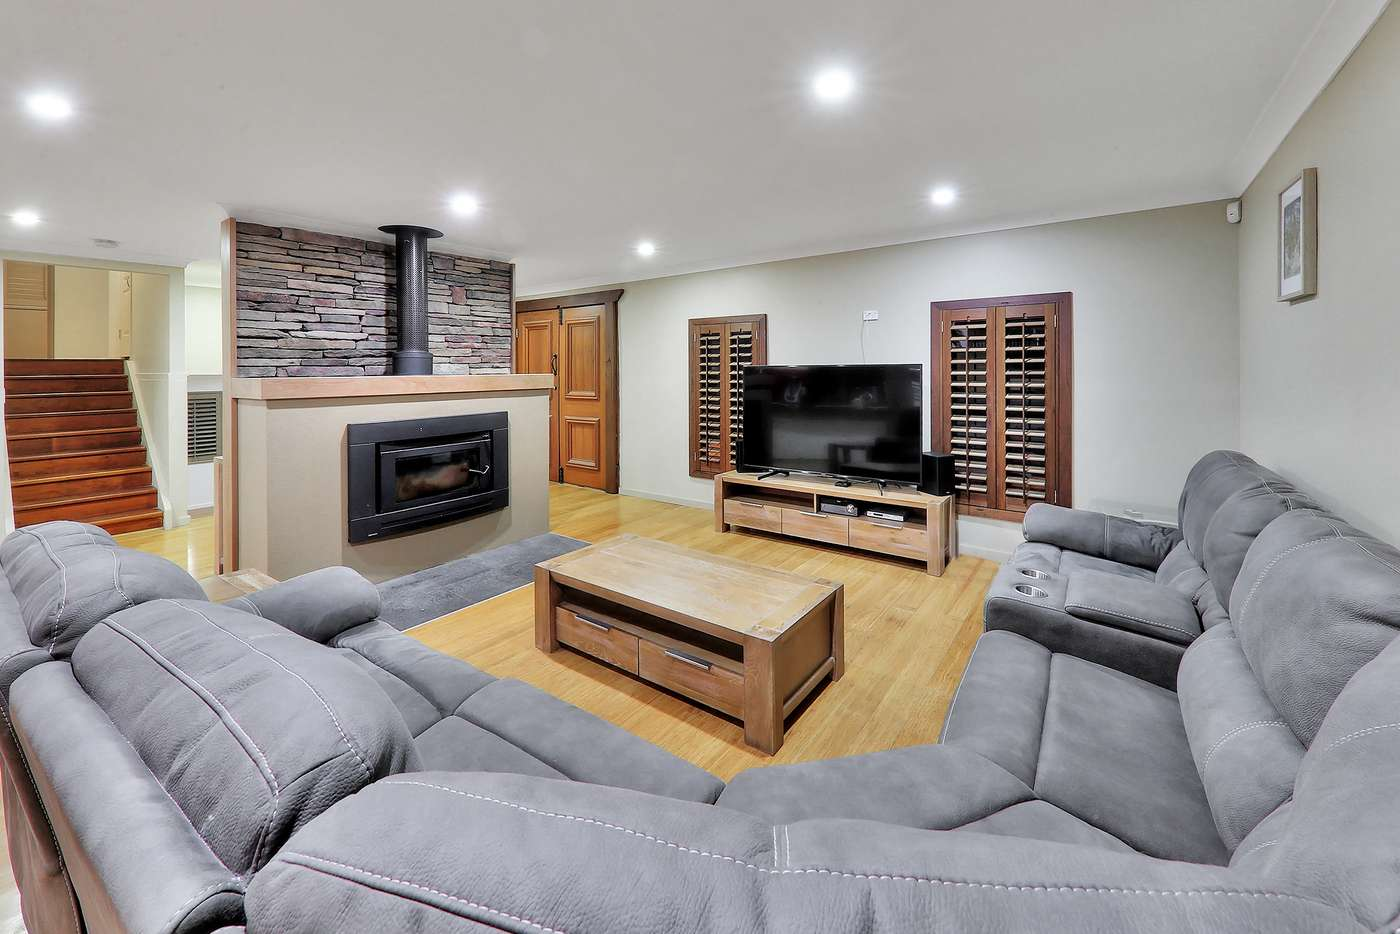 Seventh view of Homely house listing, 11 Brigantine Place, Sunnybank Hills QLD 4109